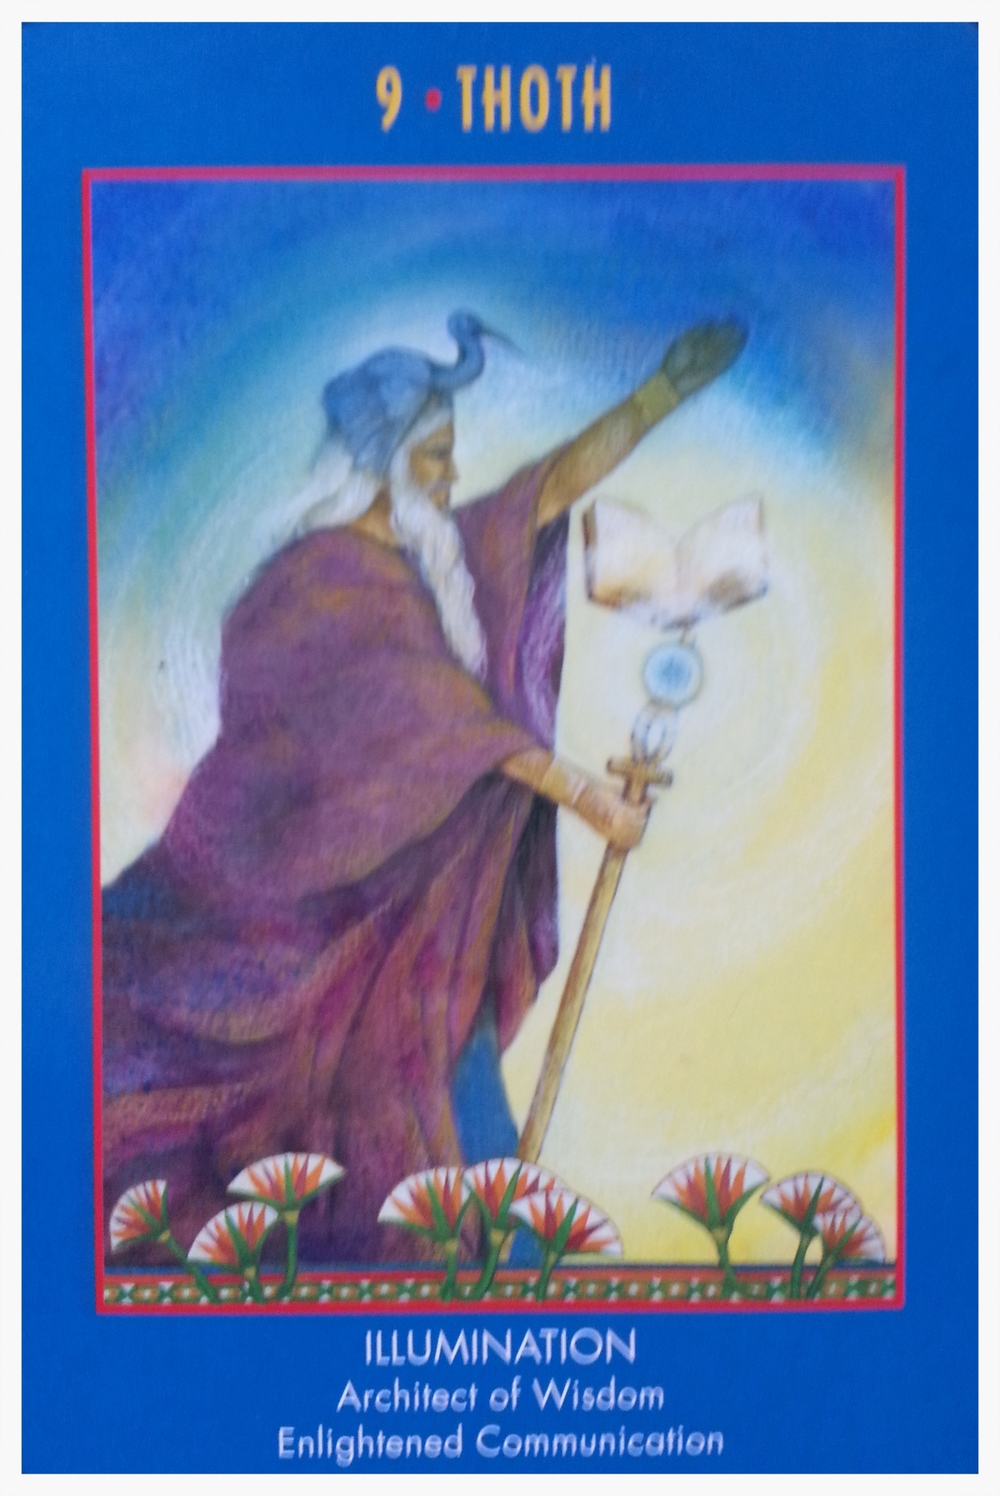 MOON-DAY AUGUST 24 TH 2015      CARD 9- THOTH - ILLUMINATION       -ARCHITECT OF WISDOM -   -ENLIGHTENED COMMUNICATION-